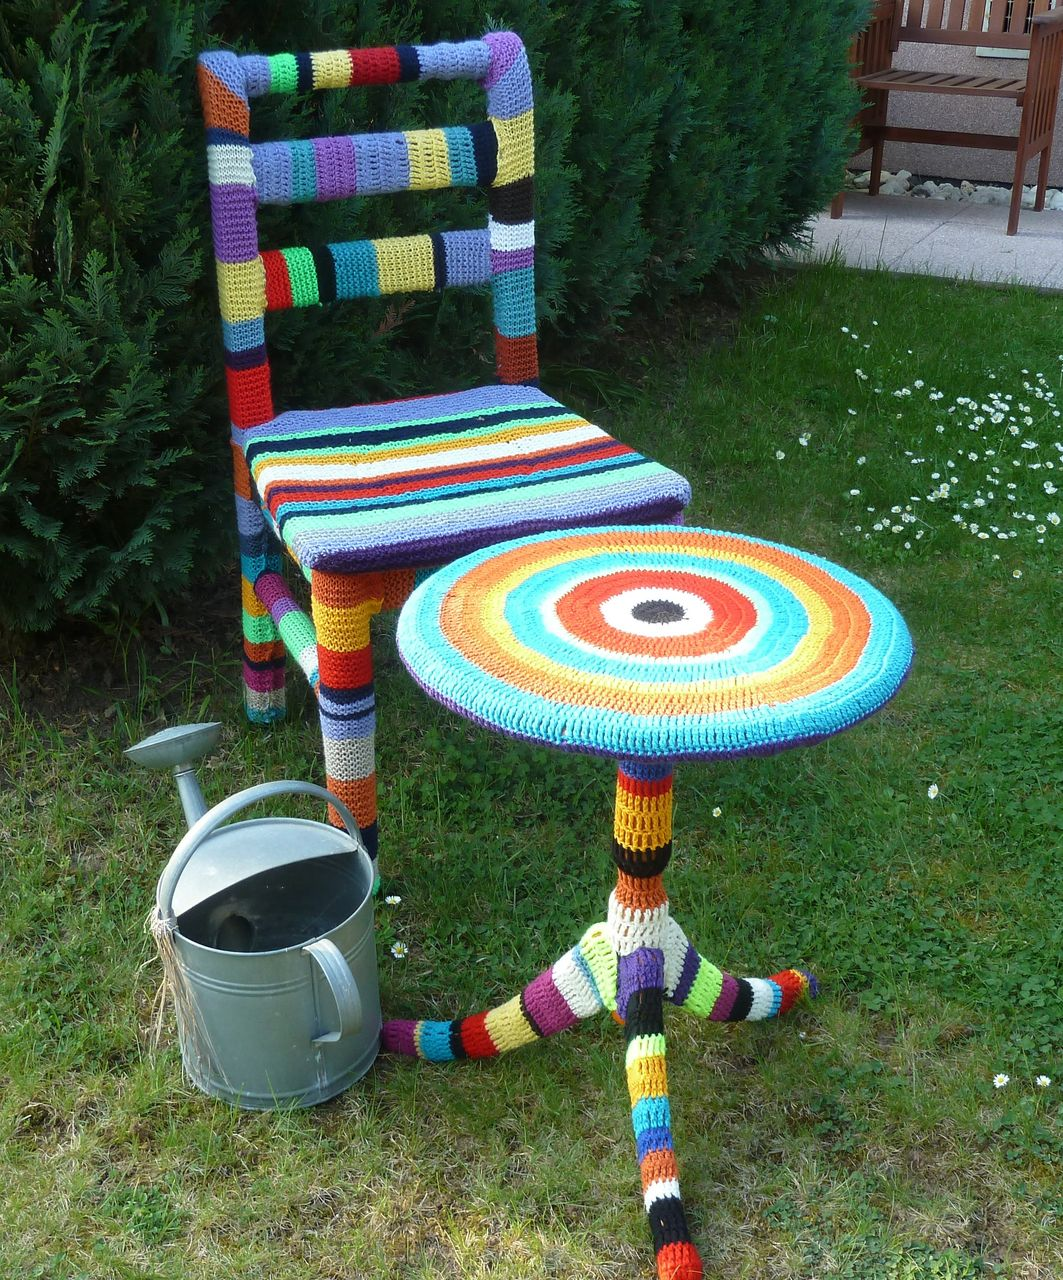 gestrickte garten deko bild kunst von edith koch bei kunstnet. Black Bedroom Furniture Sets. Home Design Ideas